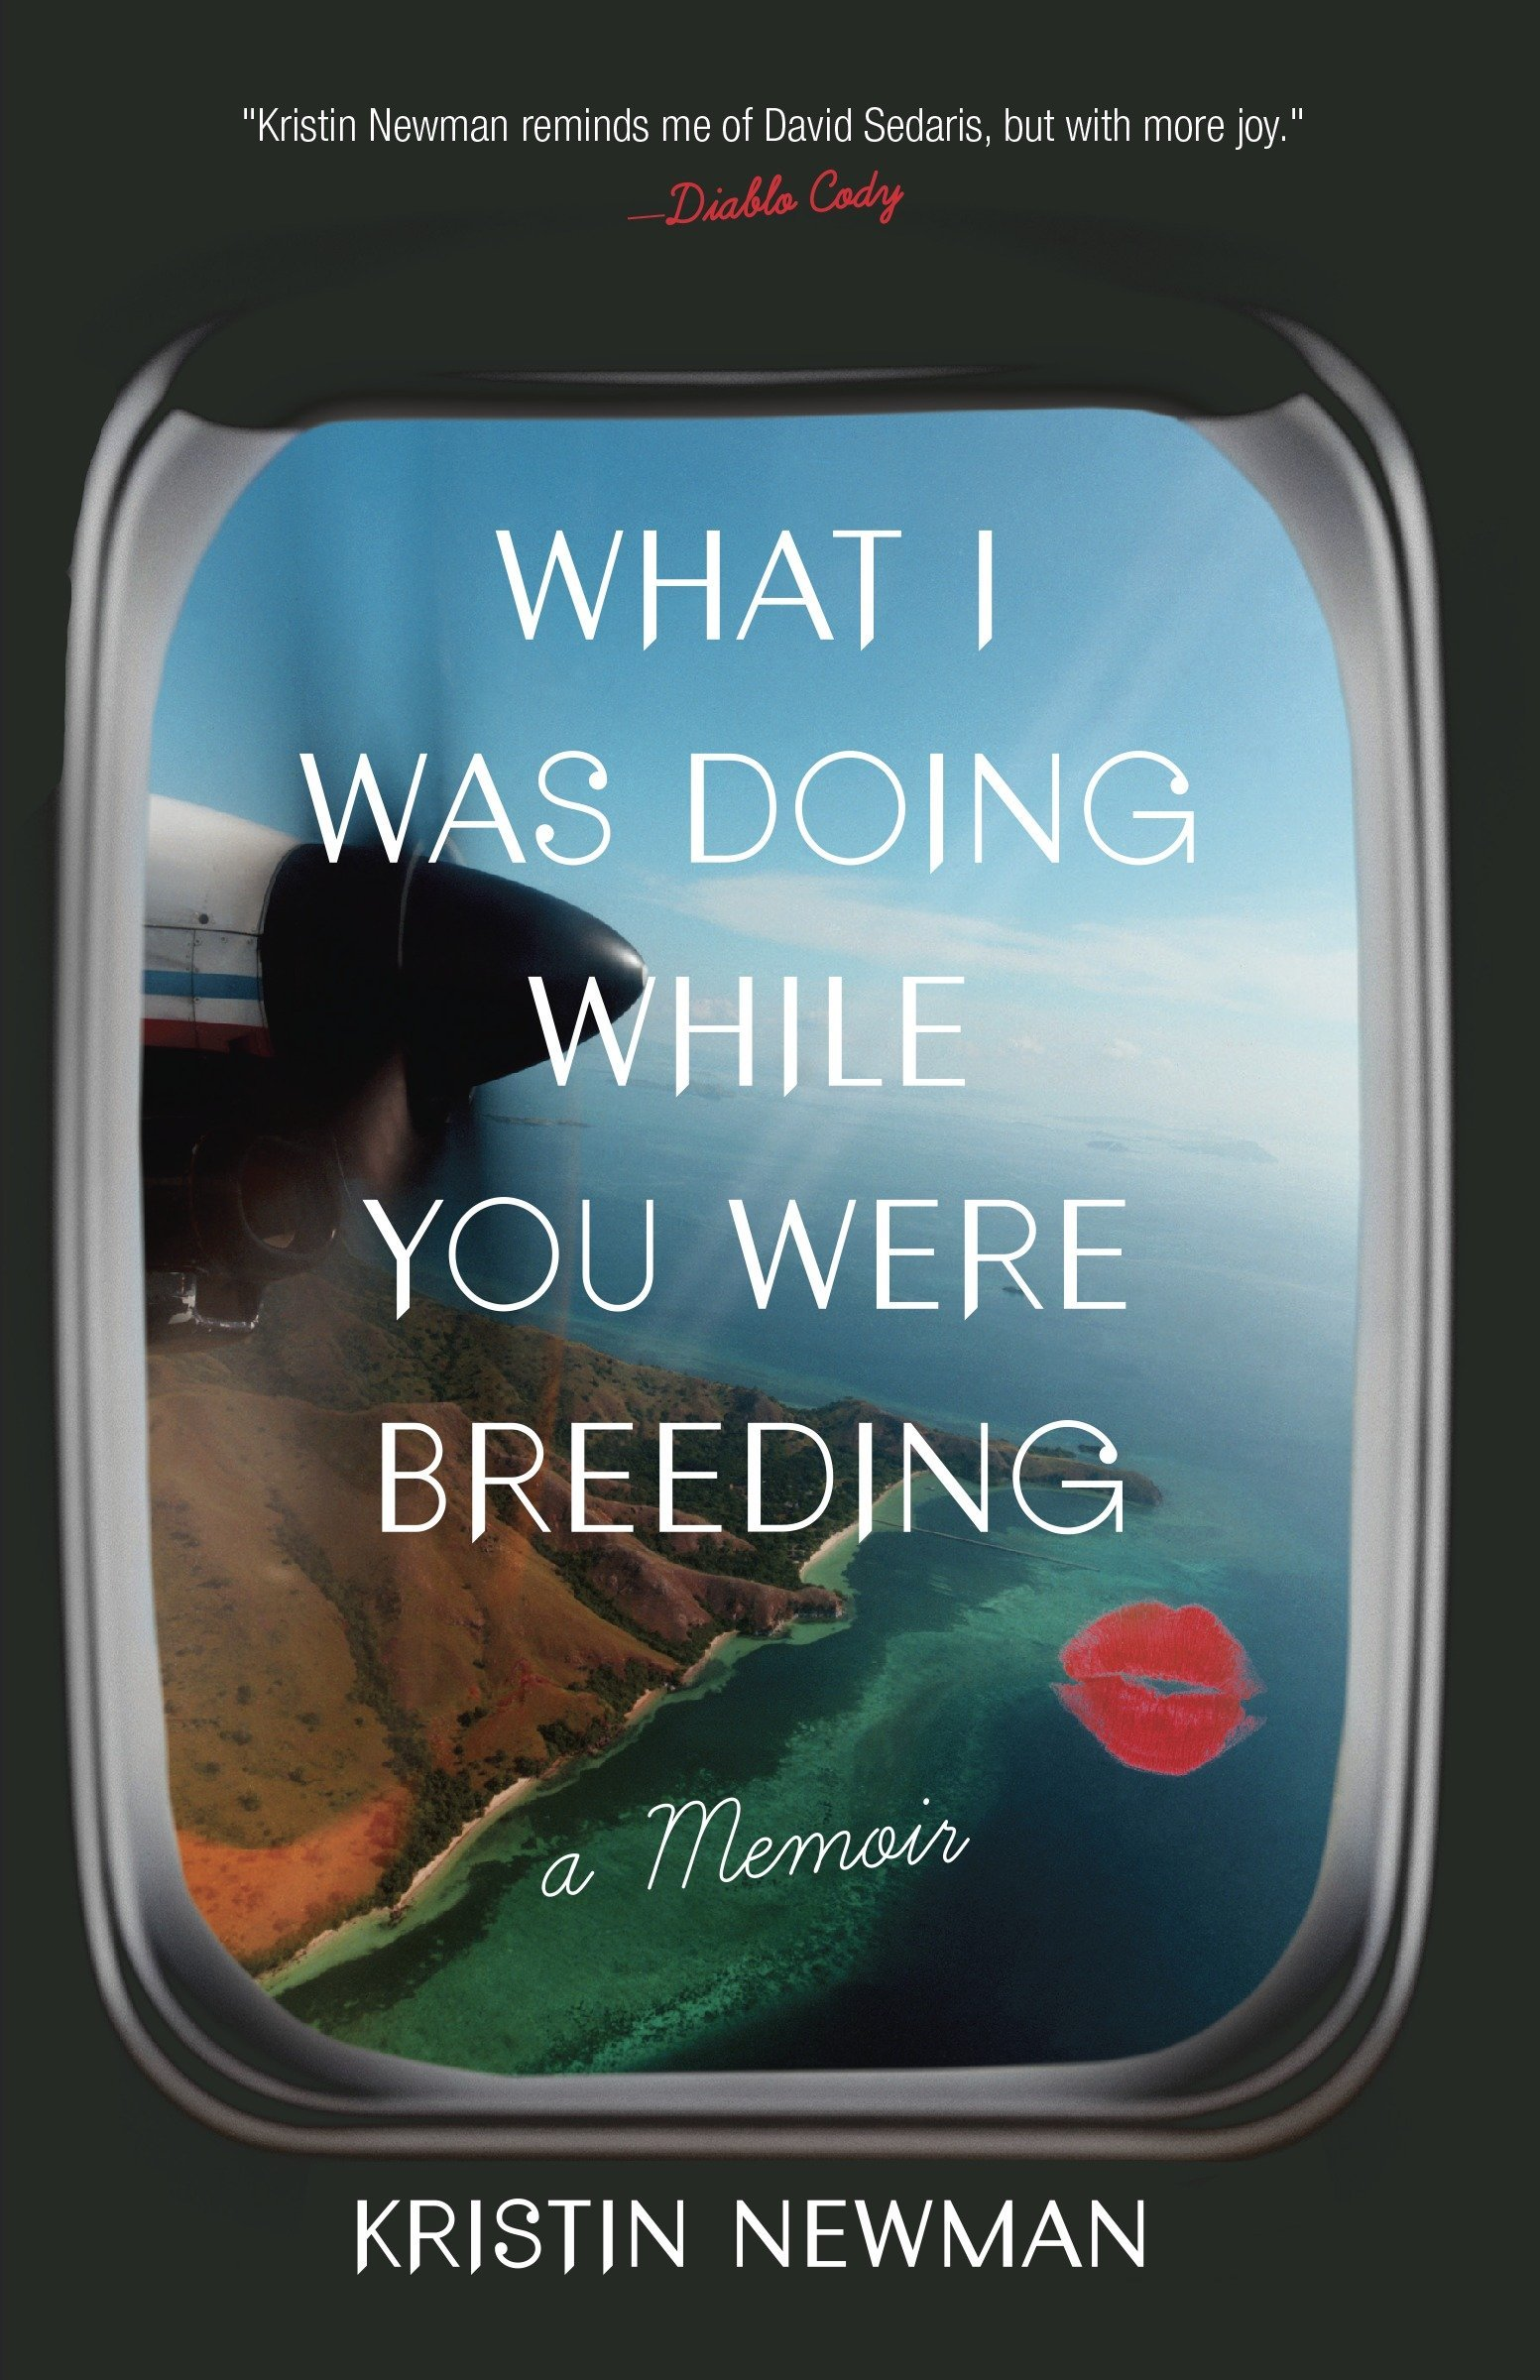 kristin newman what i was doing while you were breedingtravel book guide wanderlust solo female travel book tips reading list